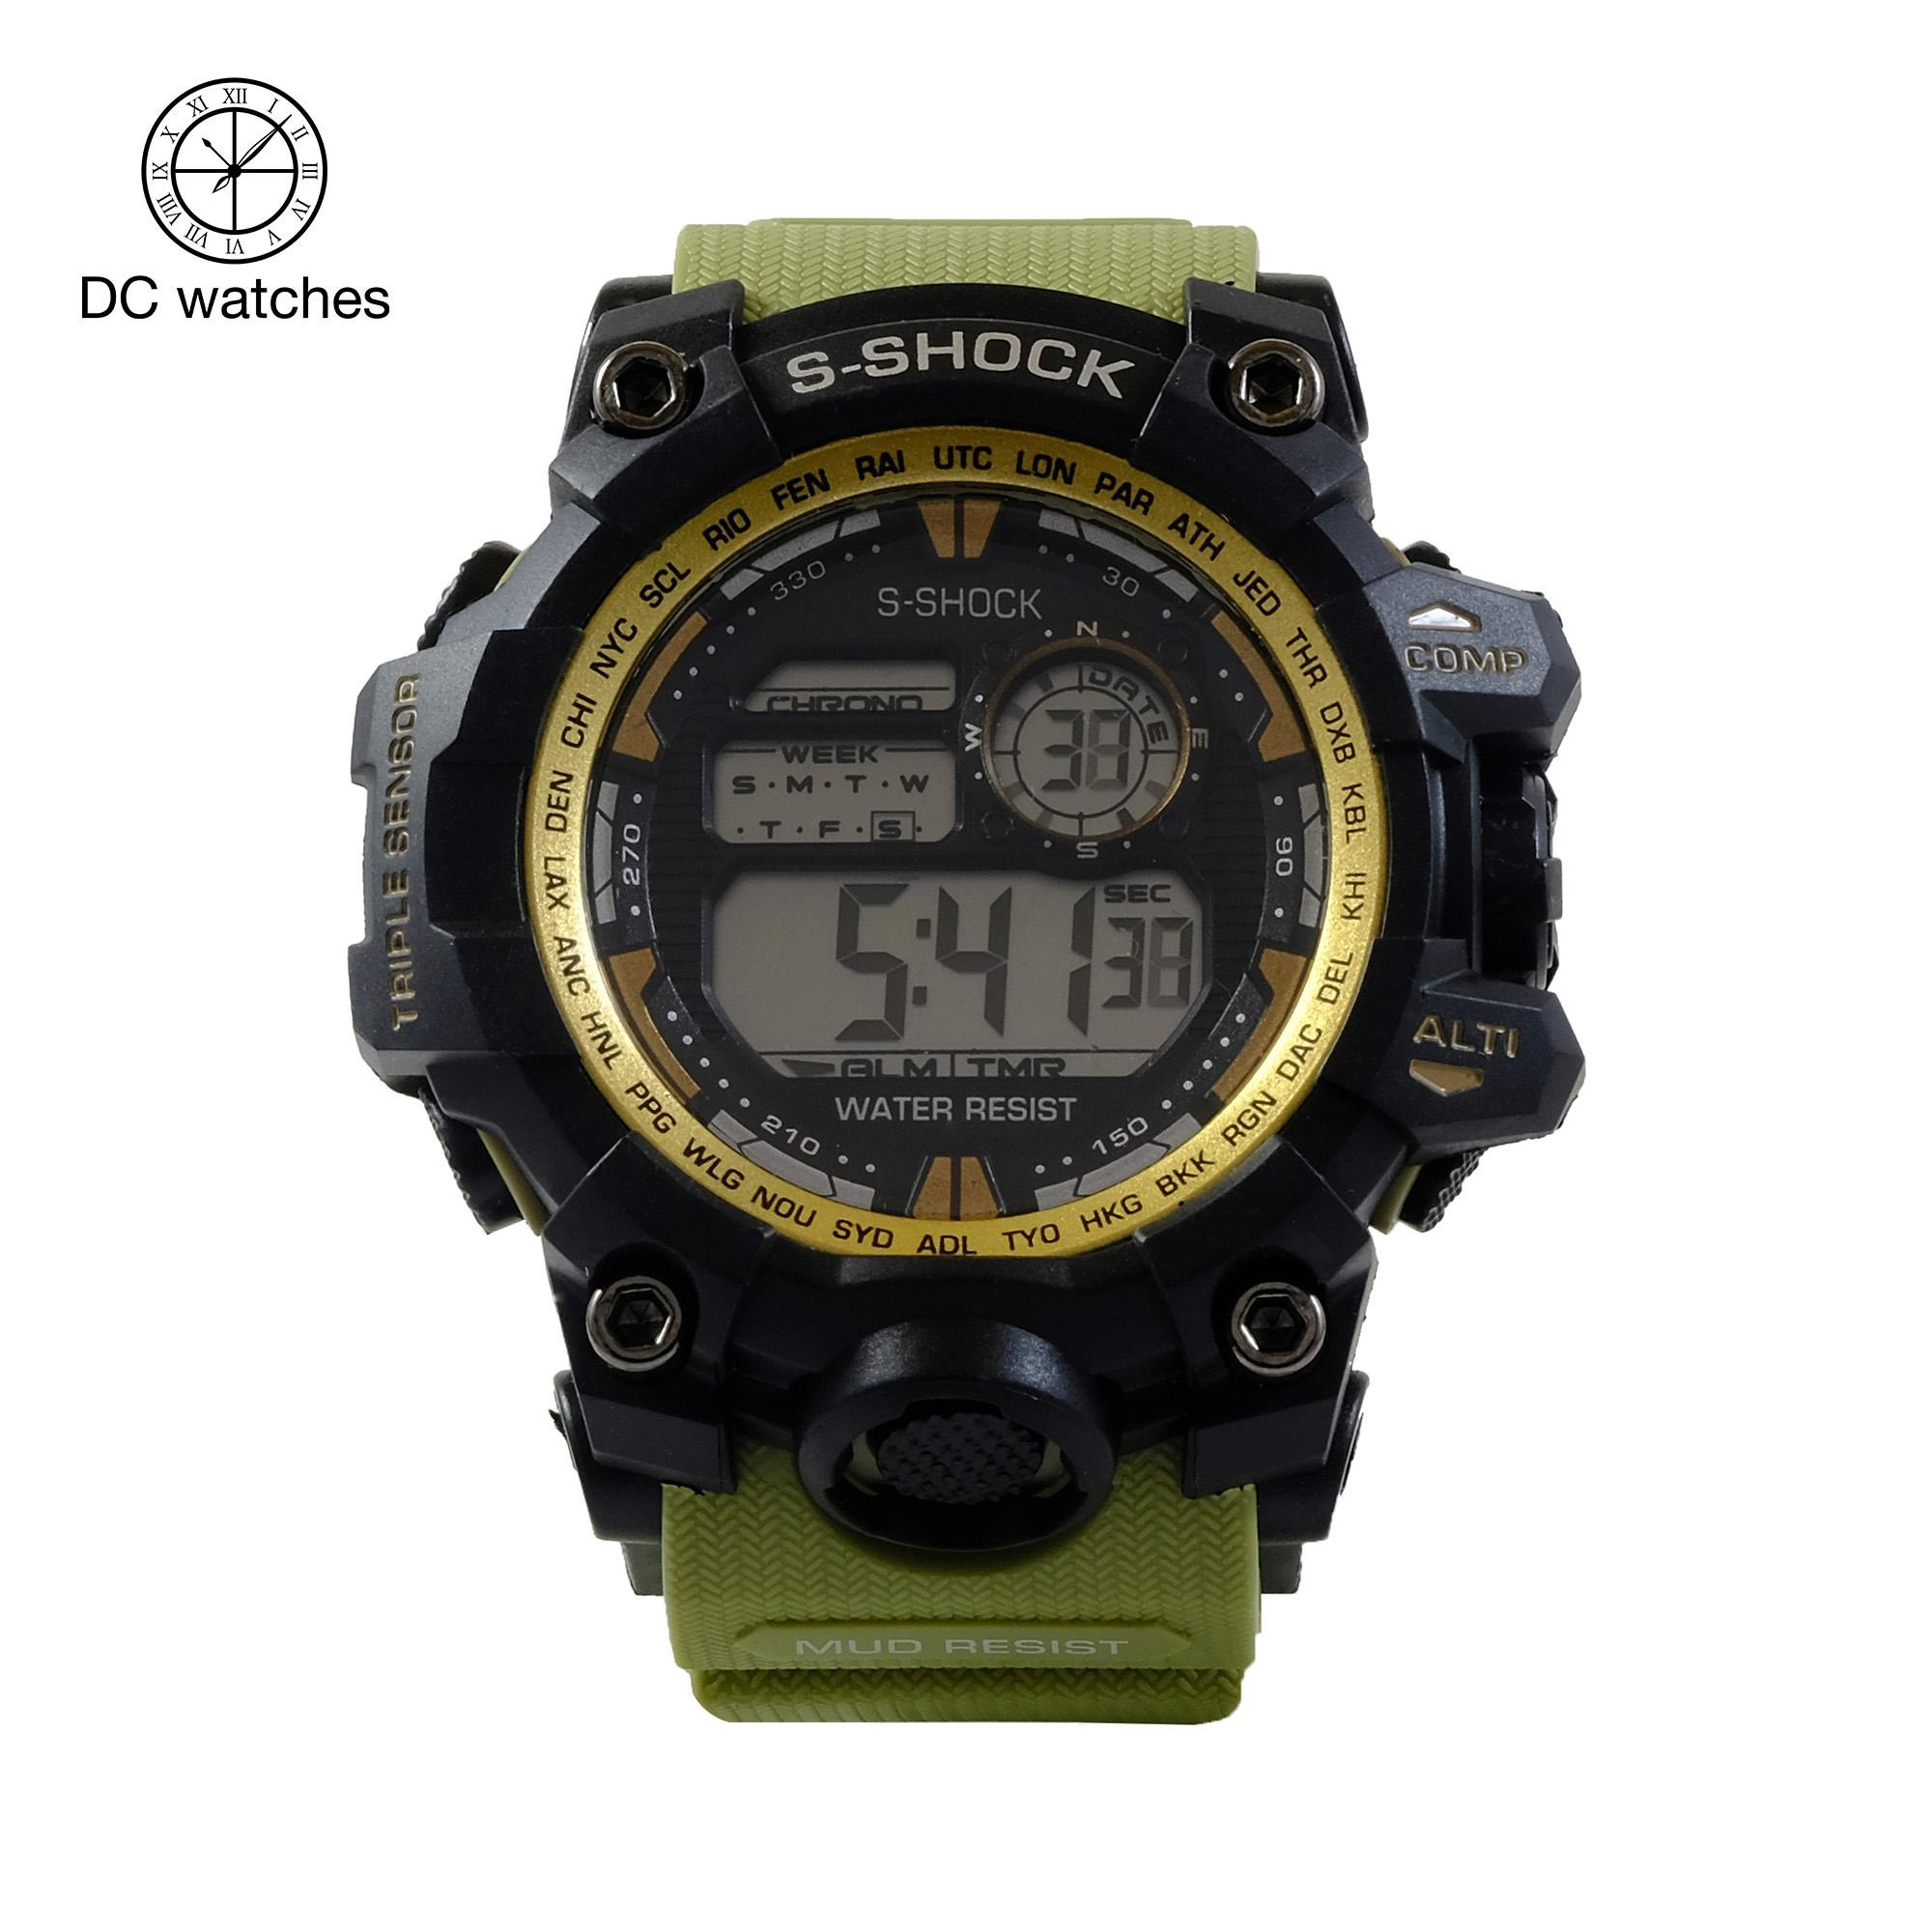 64ce65b05 DC Watches S-shock World Time 9977 WATERPROOF watch for men watch for women  watches